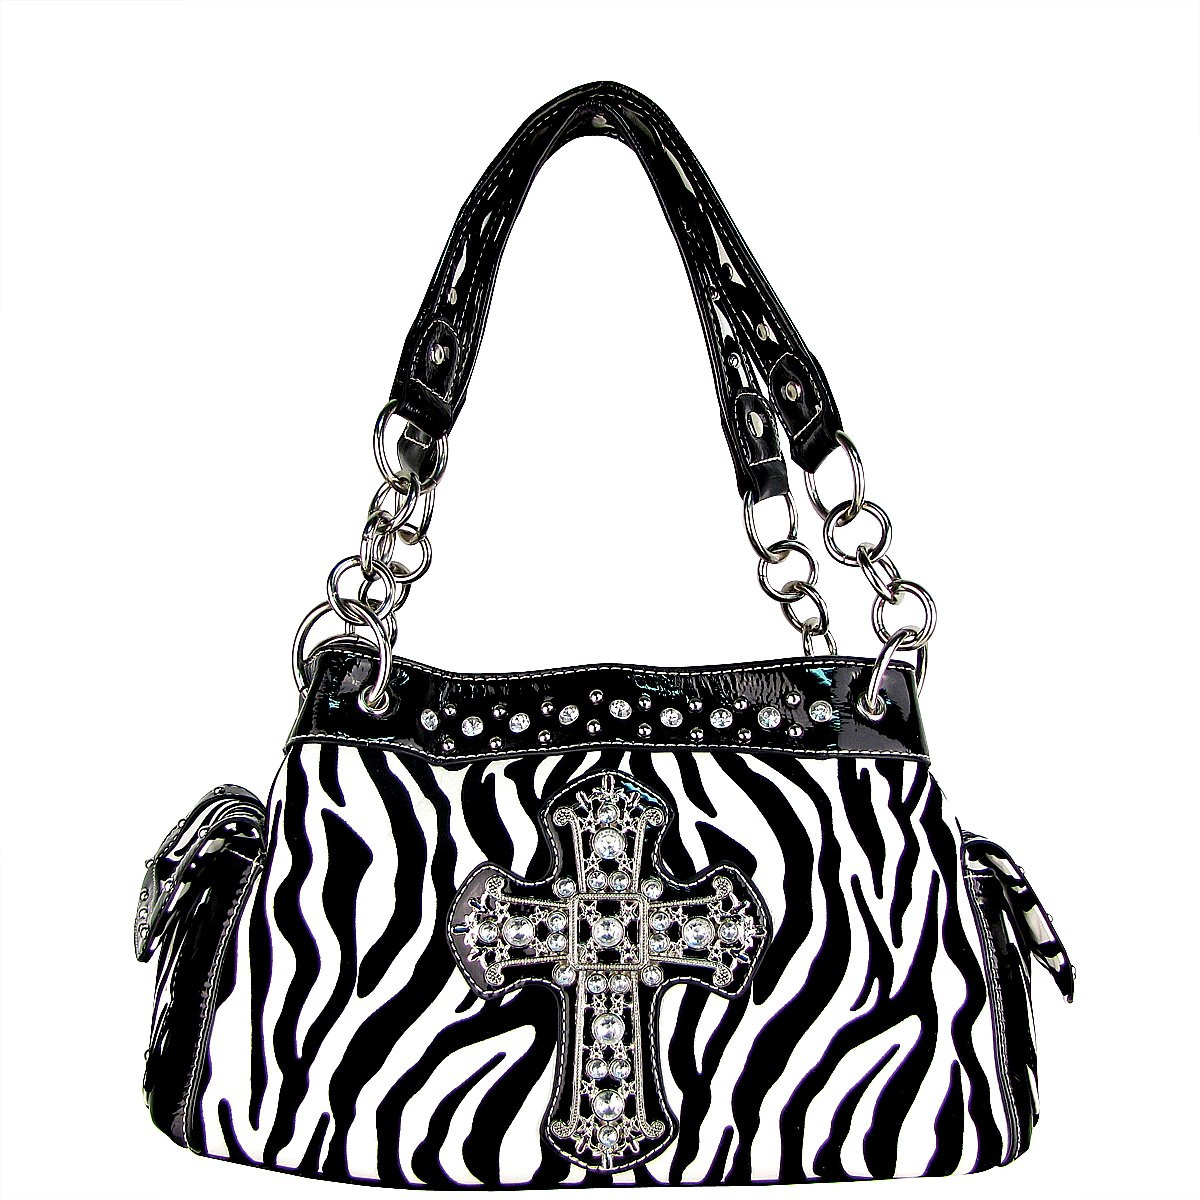 BLACK ZEBRA PRINT CROSS SHOULDER HANDBAG HB1-98001BLK